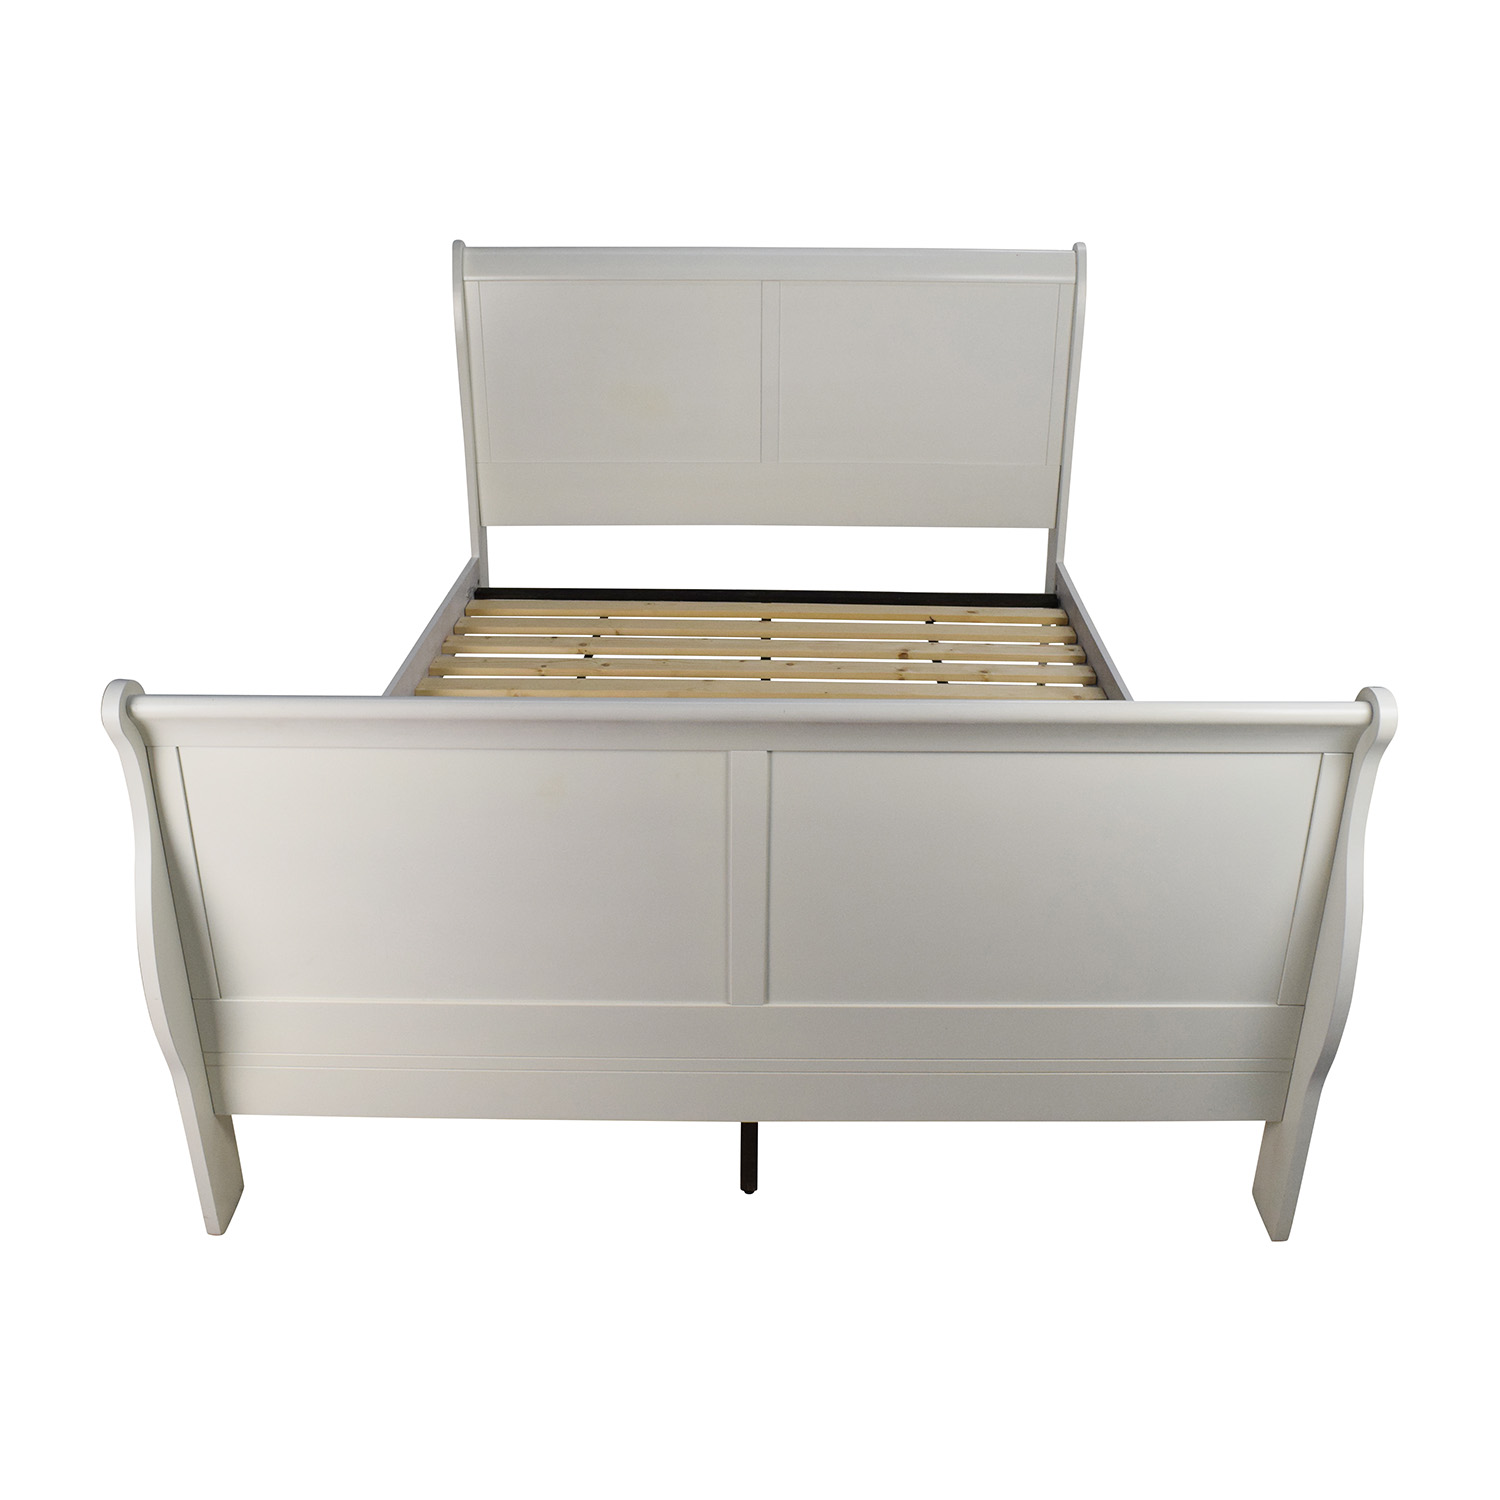 Wooden Beds 84 Off White Wooden Queen Sleigh Bed Beds